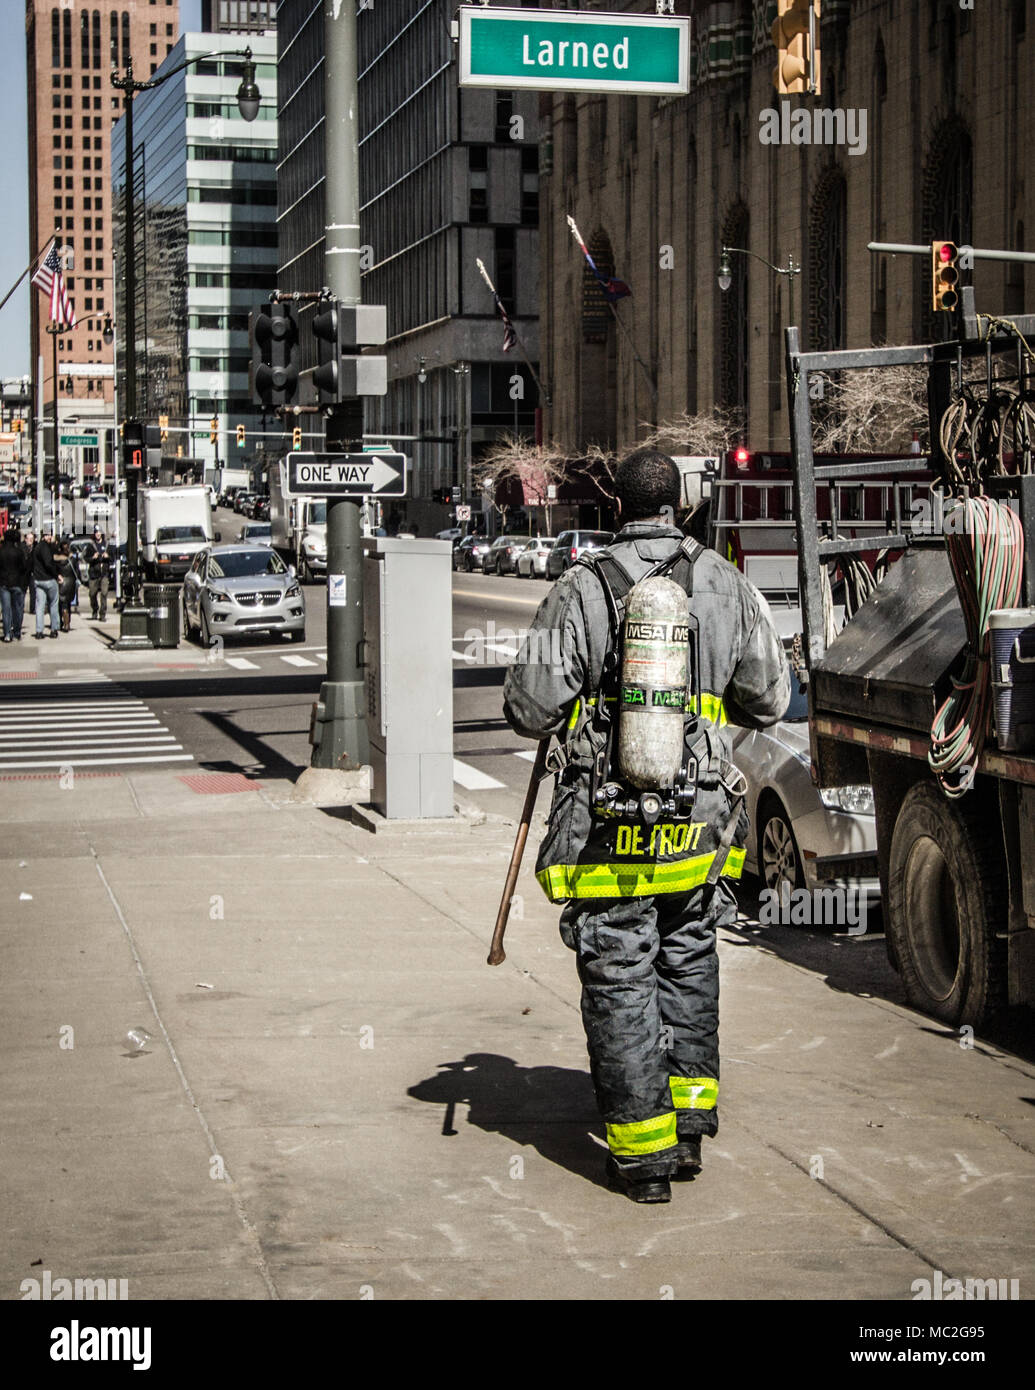 Detroit, Michigan, USA - March 22, 2018: Detroit firefighter walking down a city sidewalk after responding to a call - Stock Image